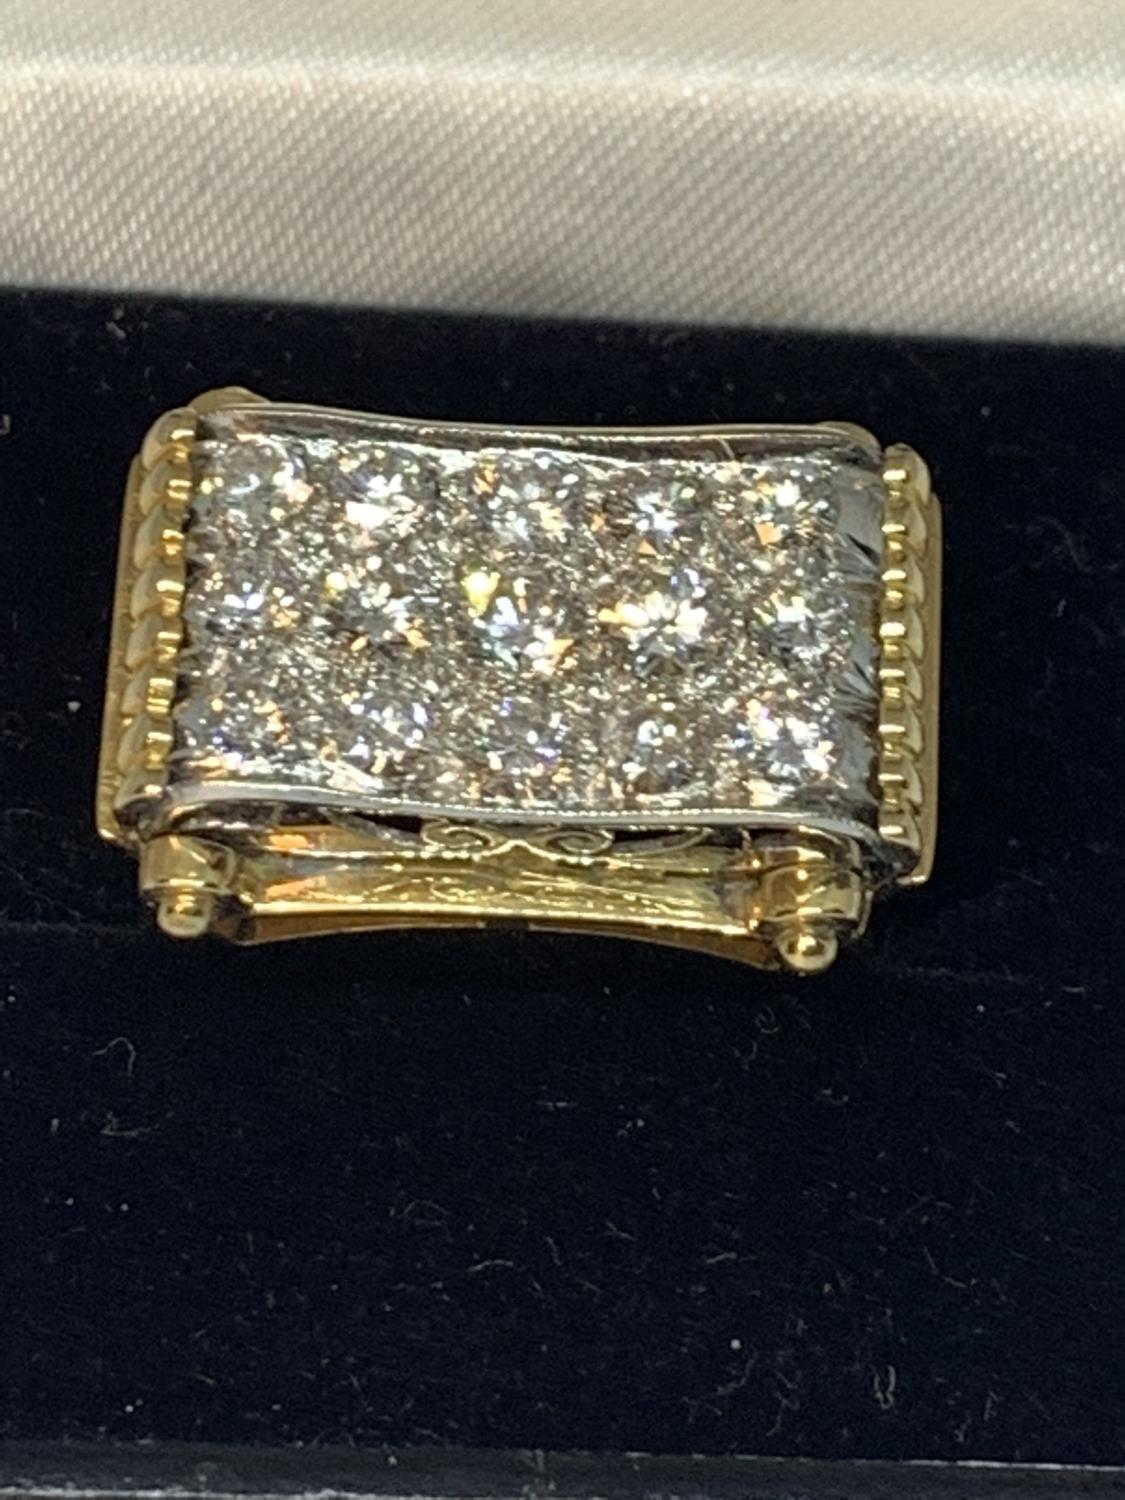 A HEAVY 18 CARAT GOLD RING WITH FIFTEEN DIAMONDS SET IN A RECTANGLE OF DIAMOND CHIPS GROSS WEIGHT 13 - Image 3 of 10